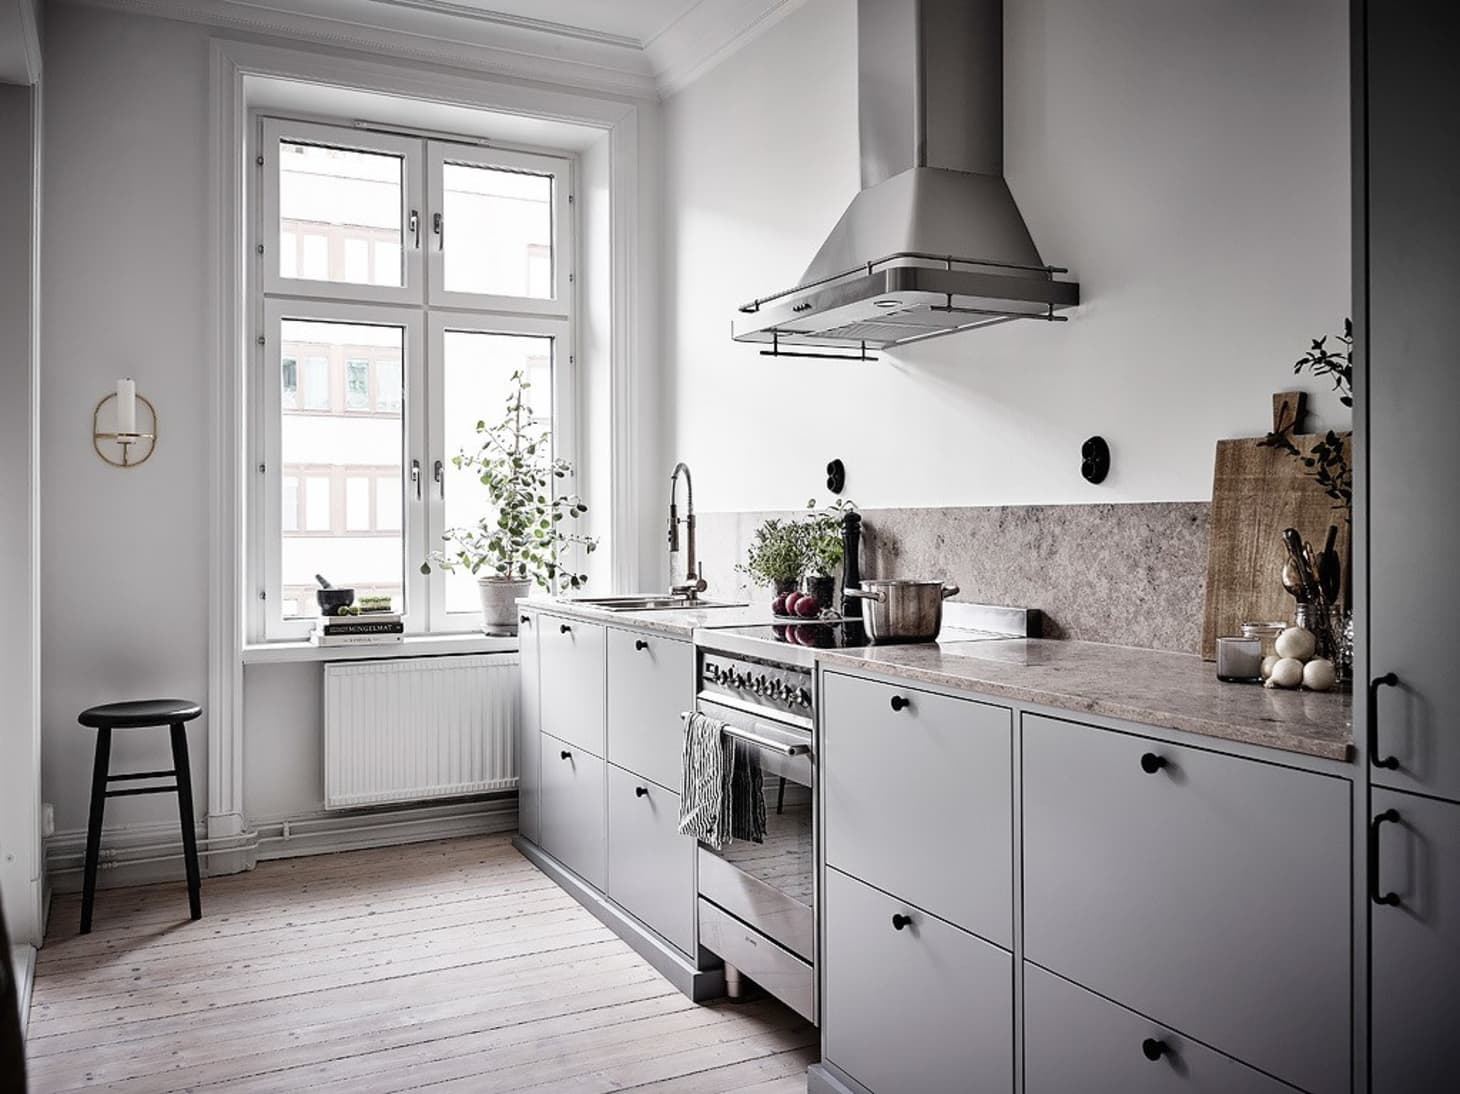 Kitchens Without Upper Cabinets: Should You Go Without ...